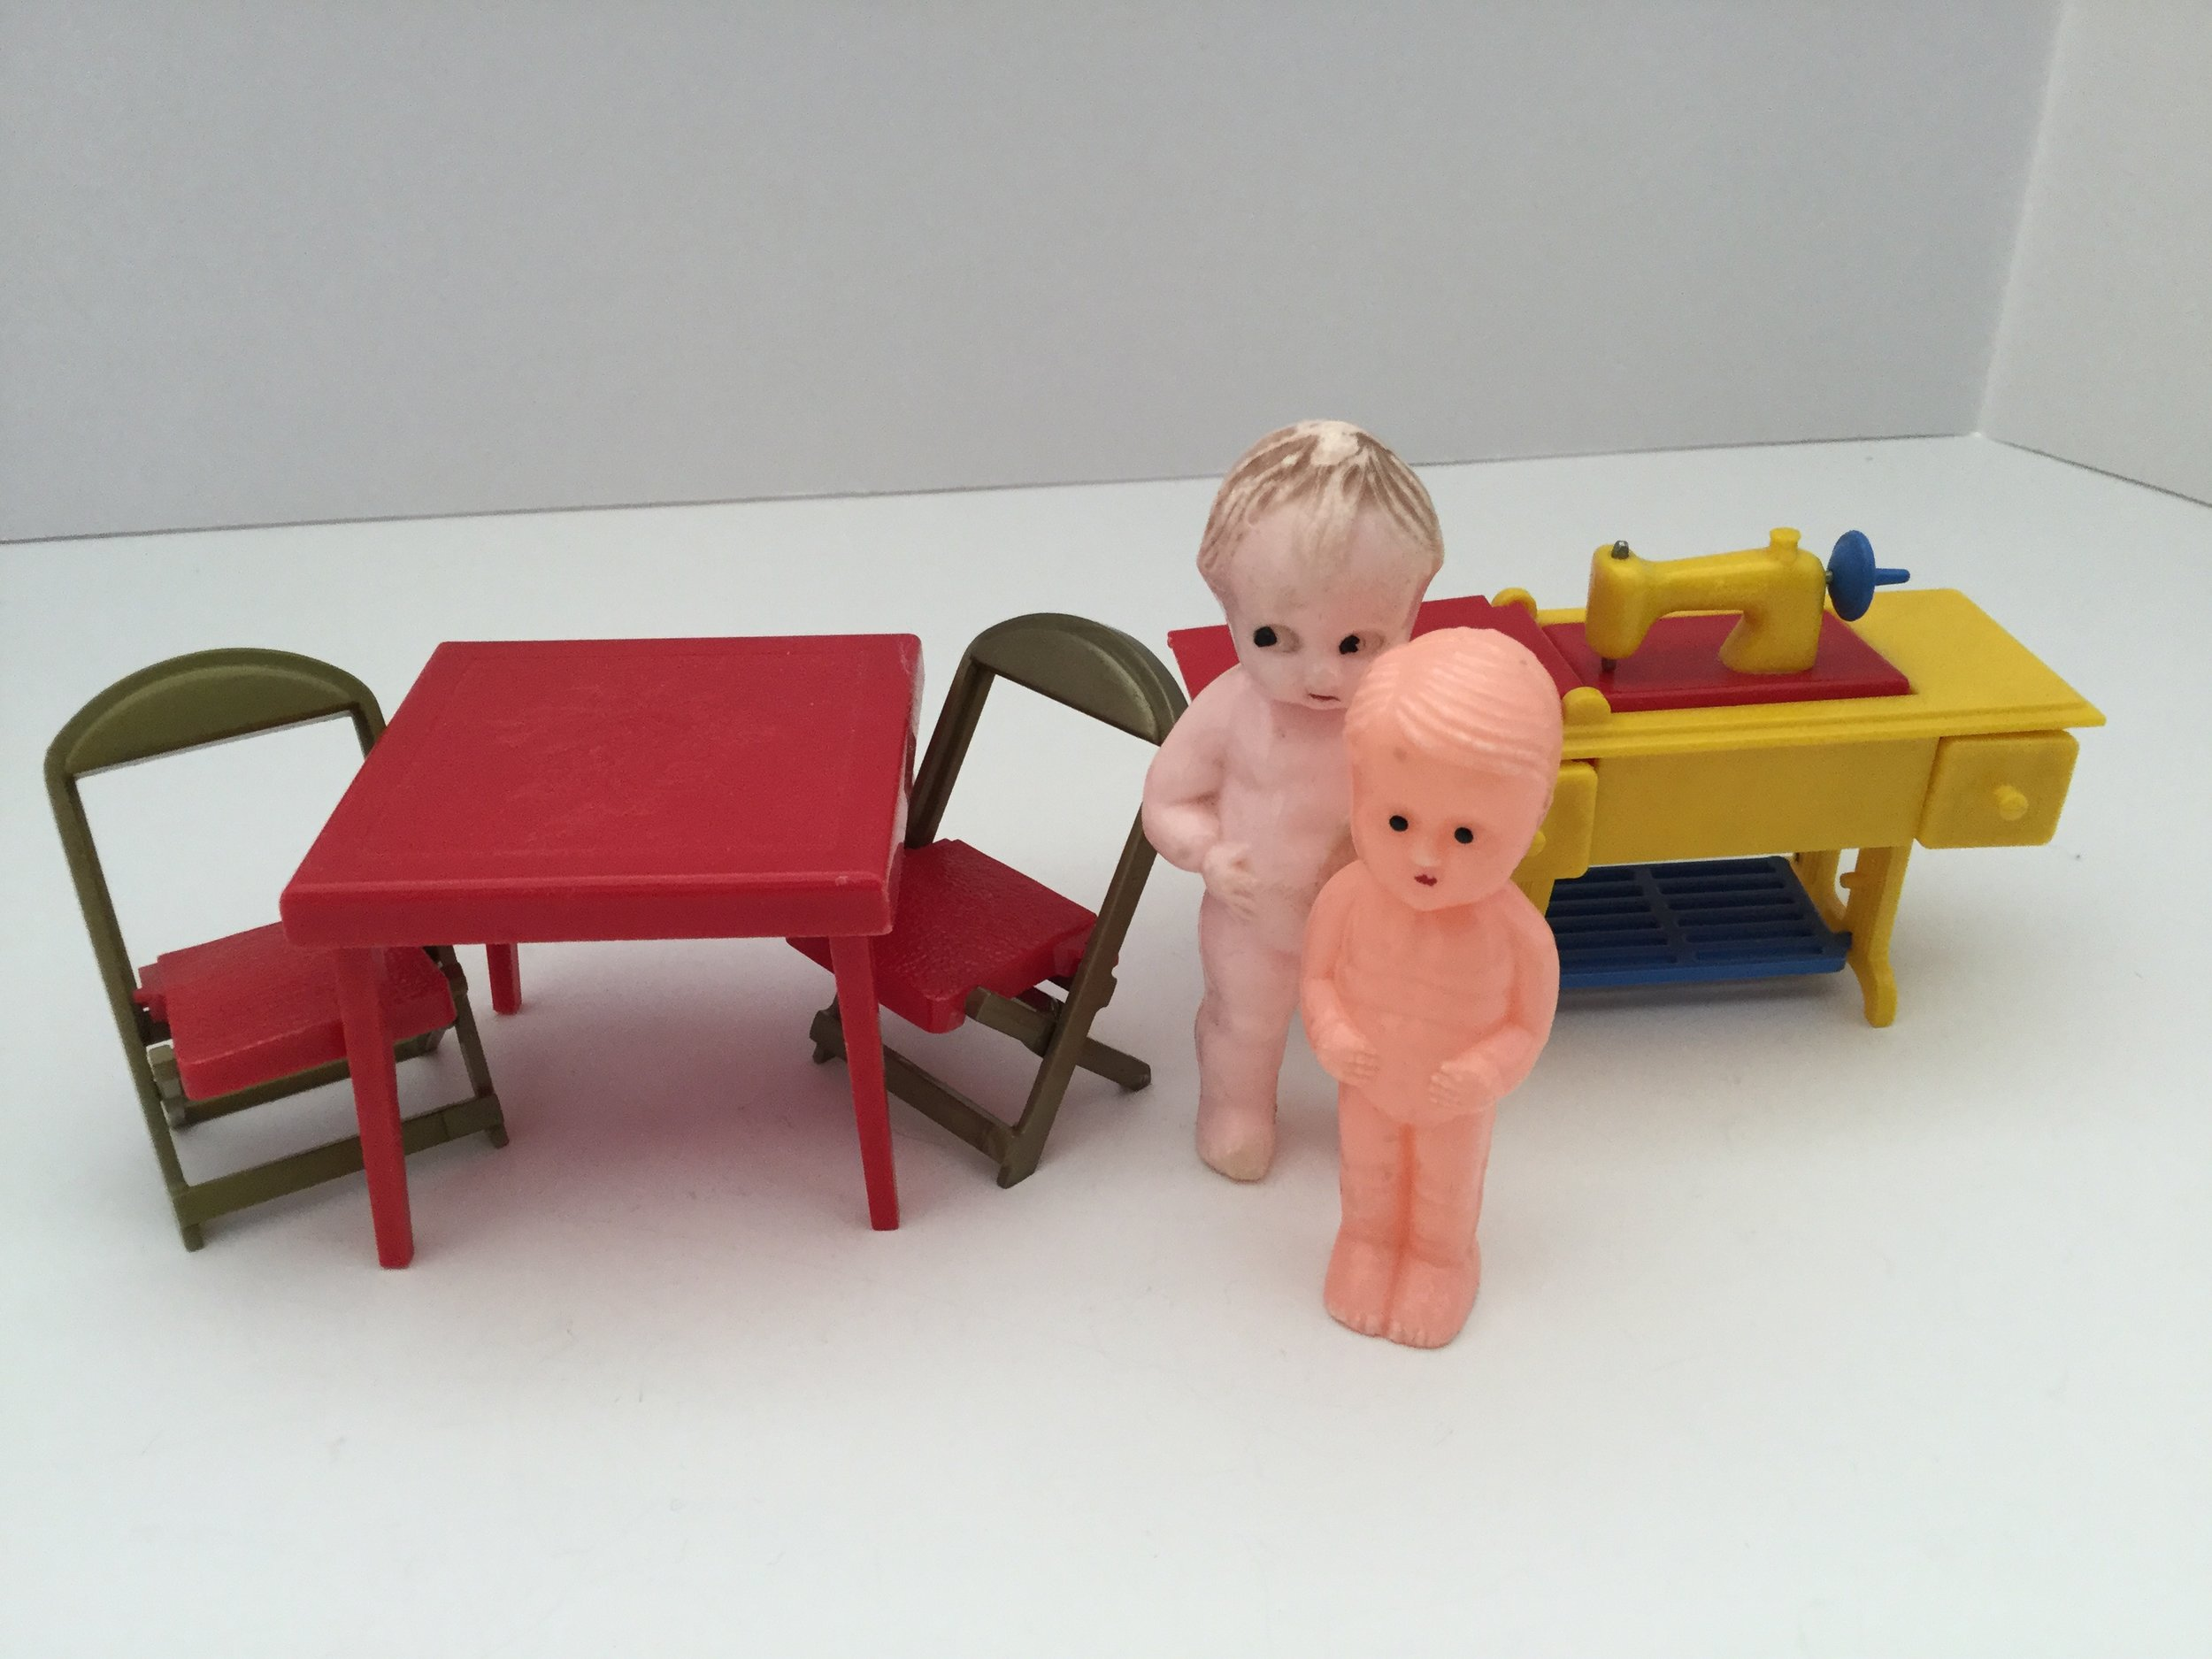 Renwal doll house furniture is now very collectible and valuable.